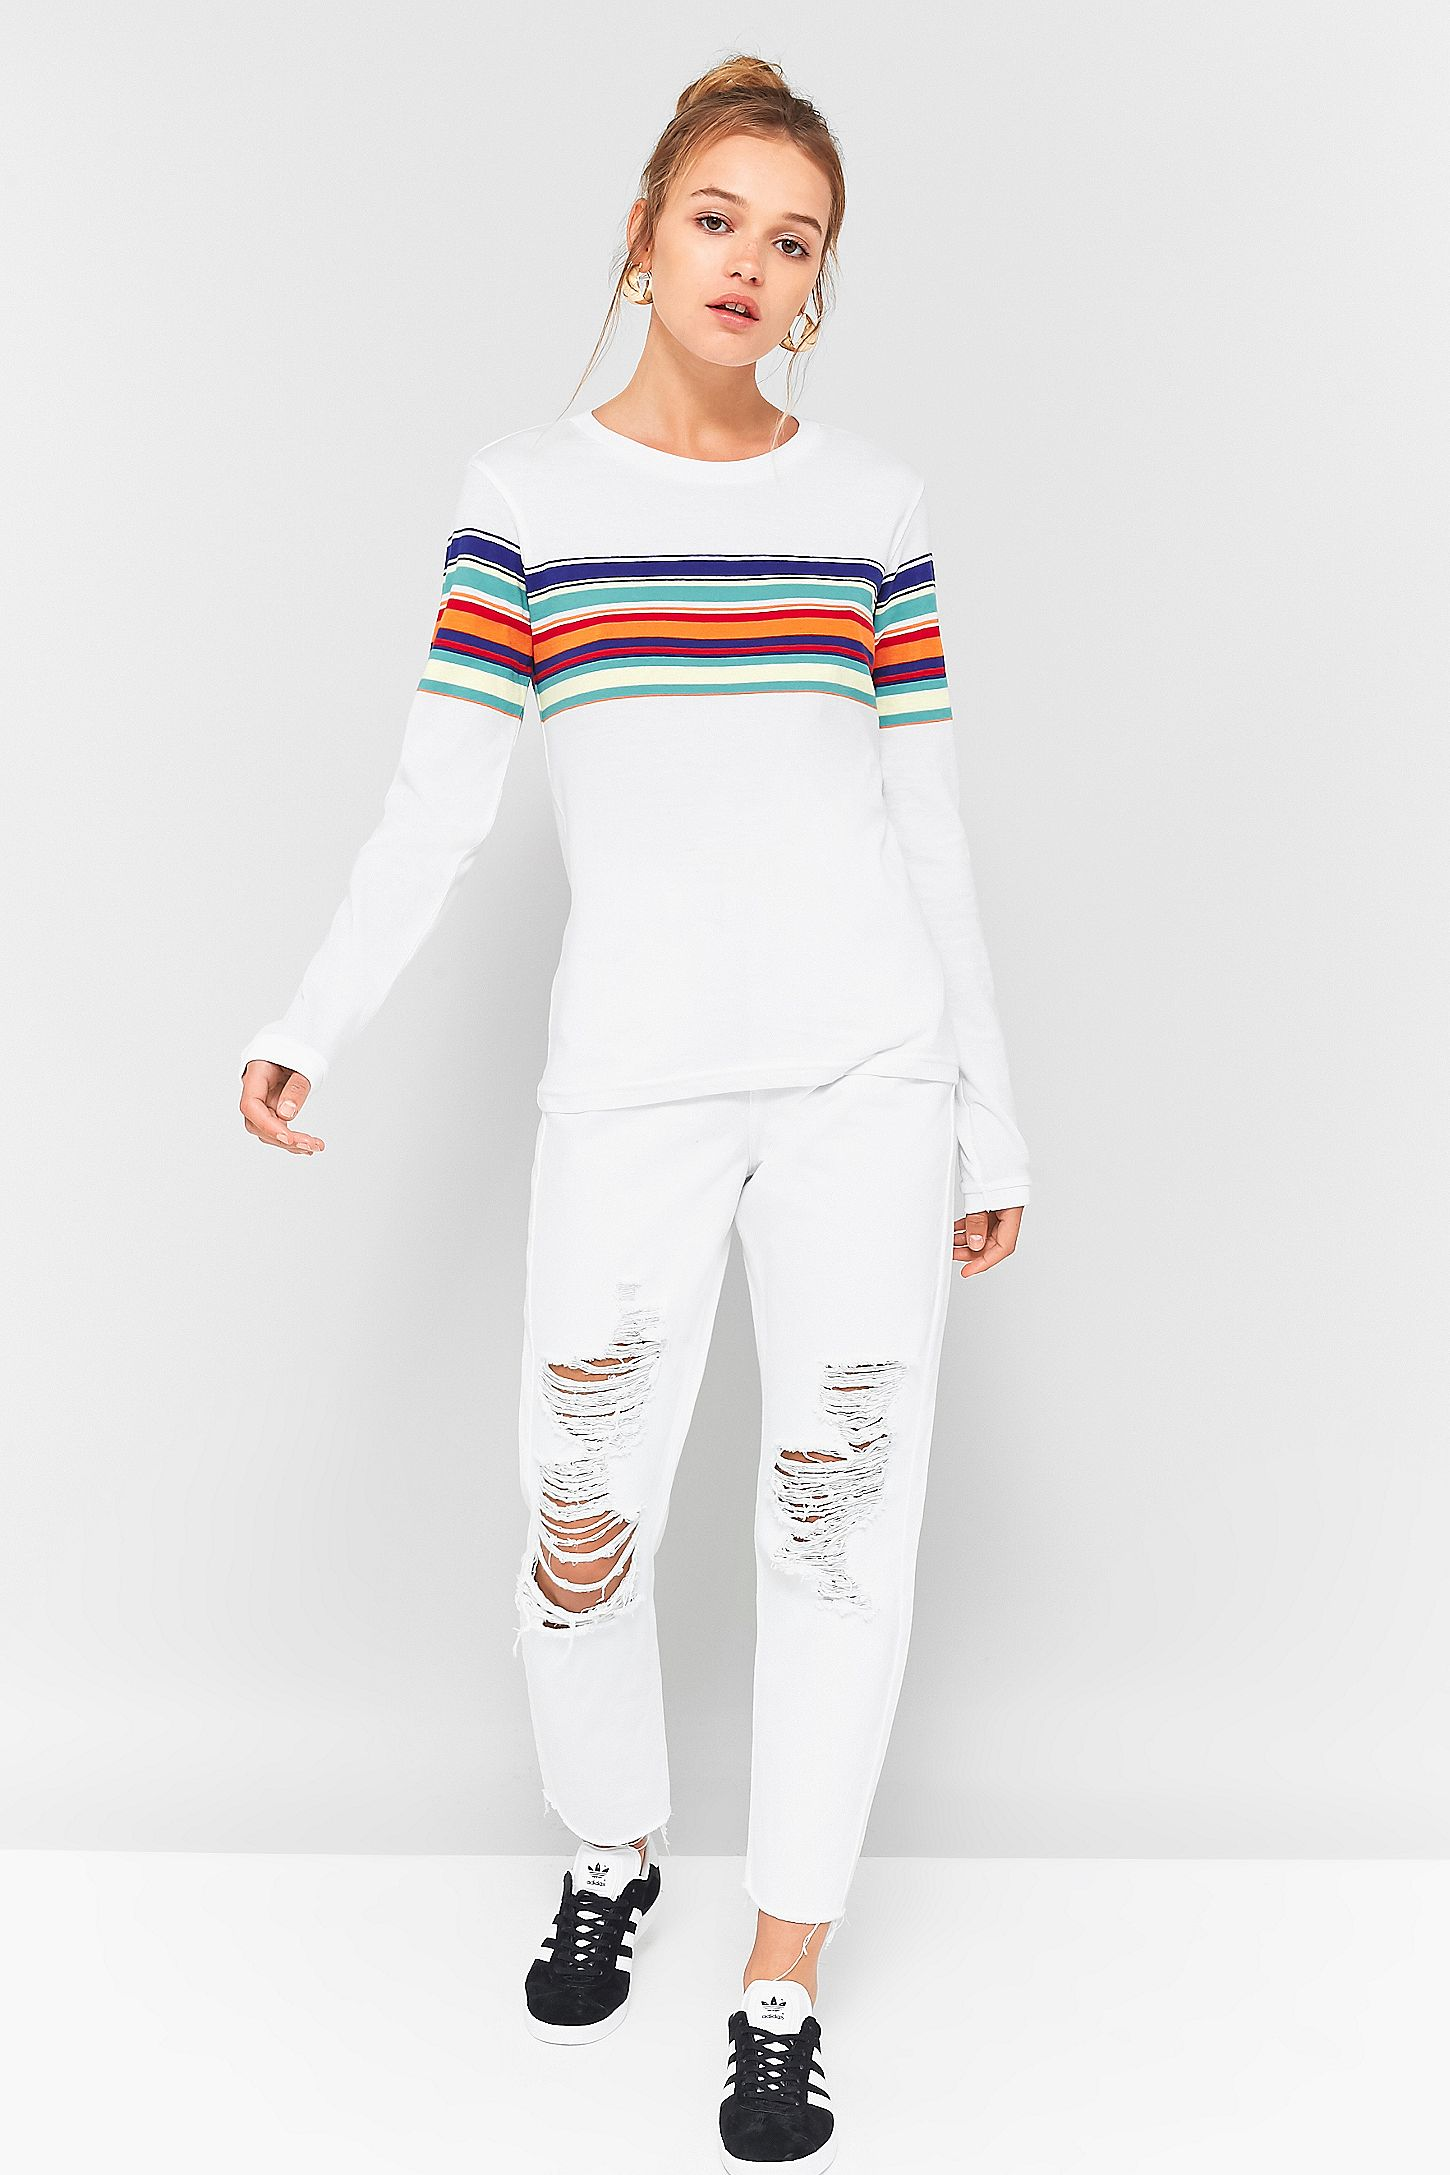 5e4be9168efd87 BDG Orange Rainbow Striped Long Sleeve T-Shirt. Click on image to zoom.  Hover to zoom. Double Tap to Zoom